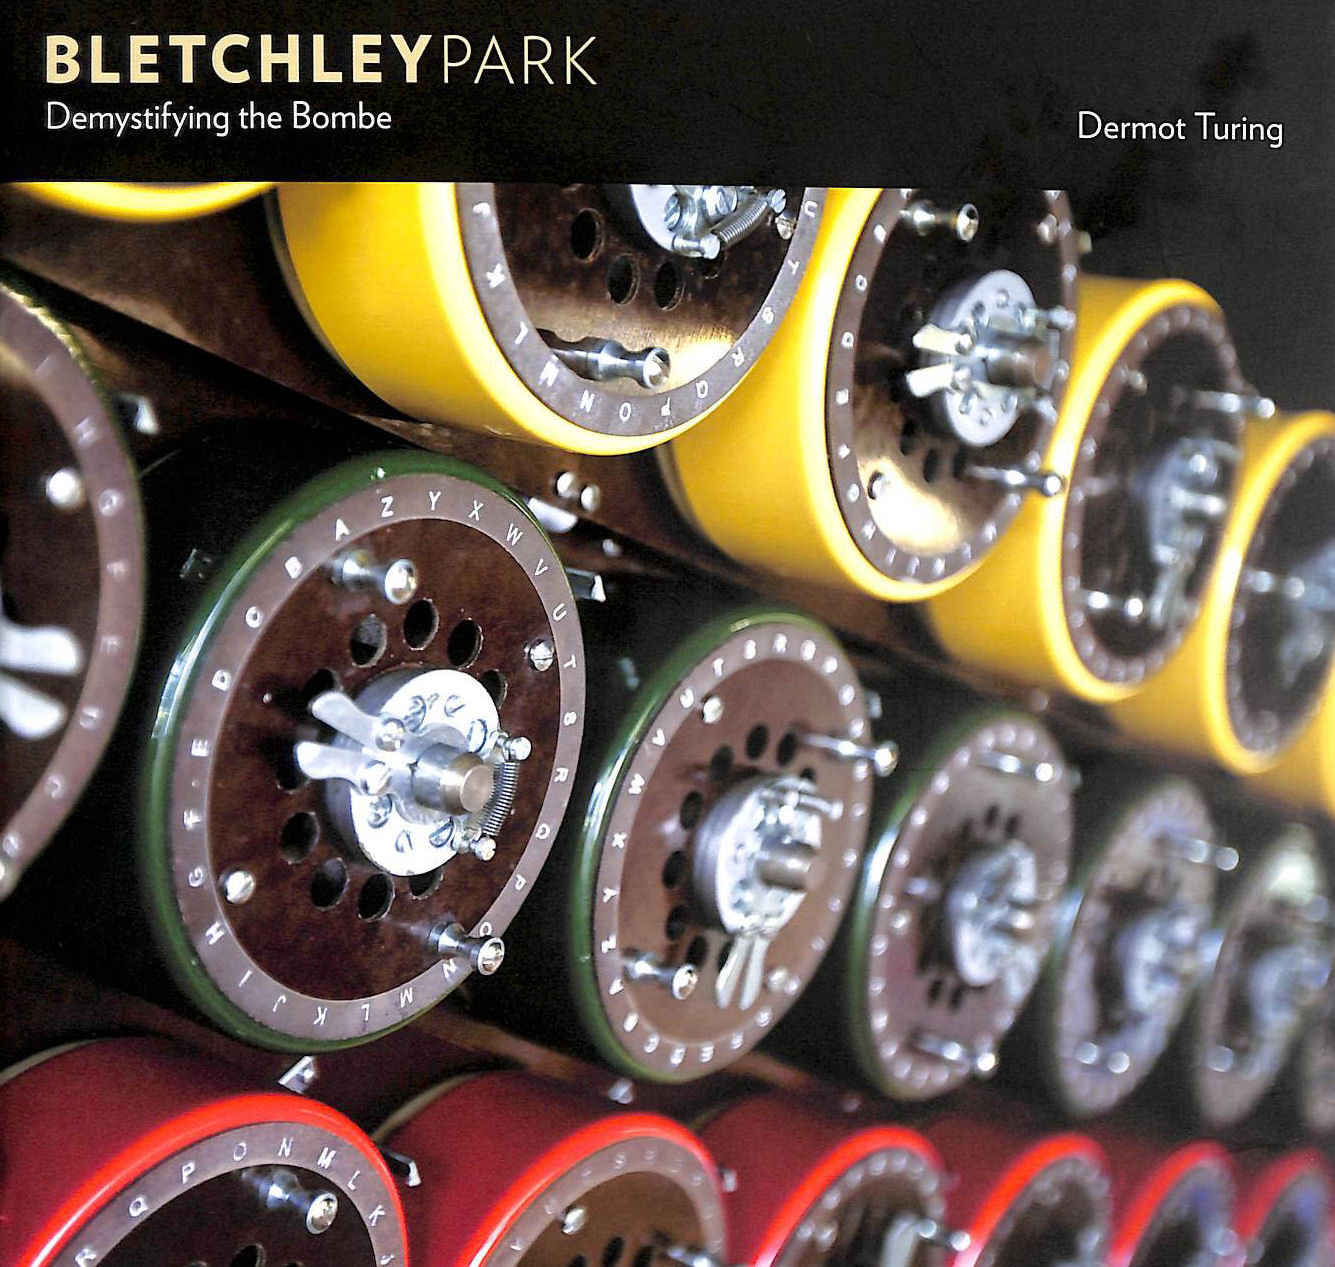 Image for Bletchley Park: Demystifying the Bombe